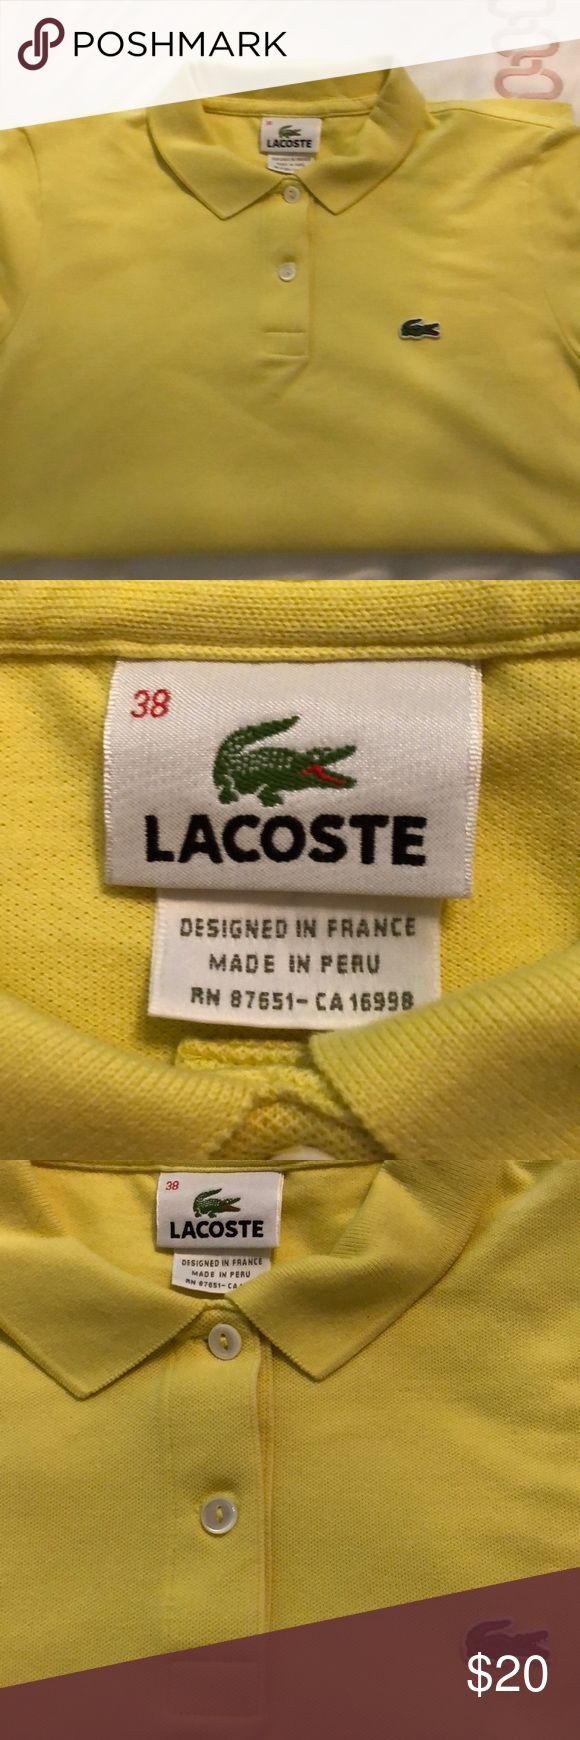 Women's Yellow Lacoste Shirt Lacoste polo shirt Lacoste Tops Button Down Shirts